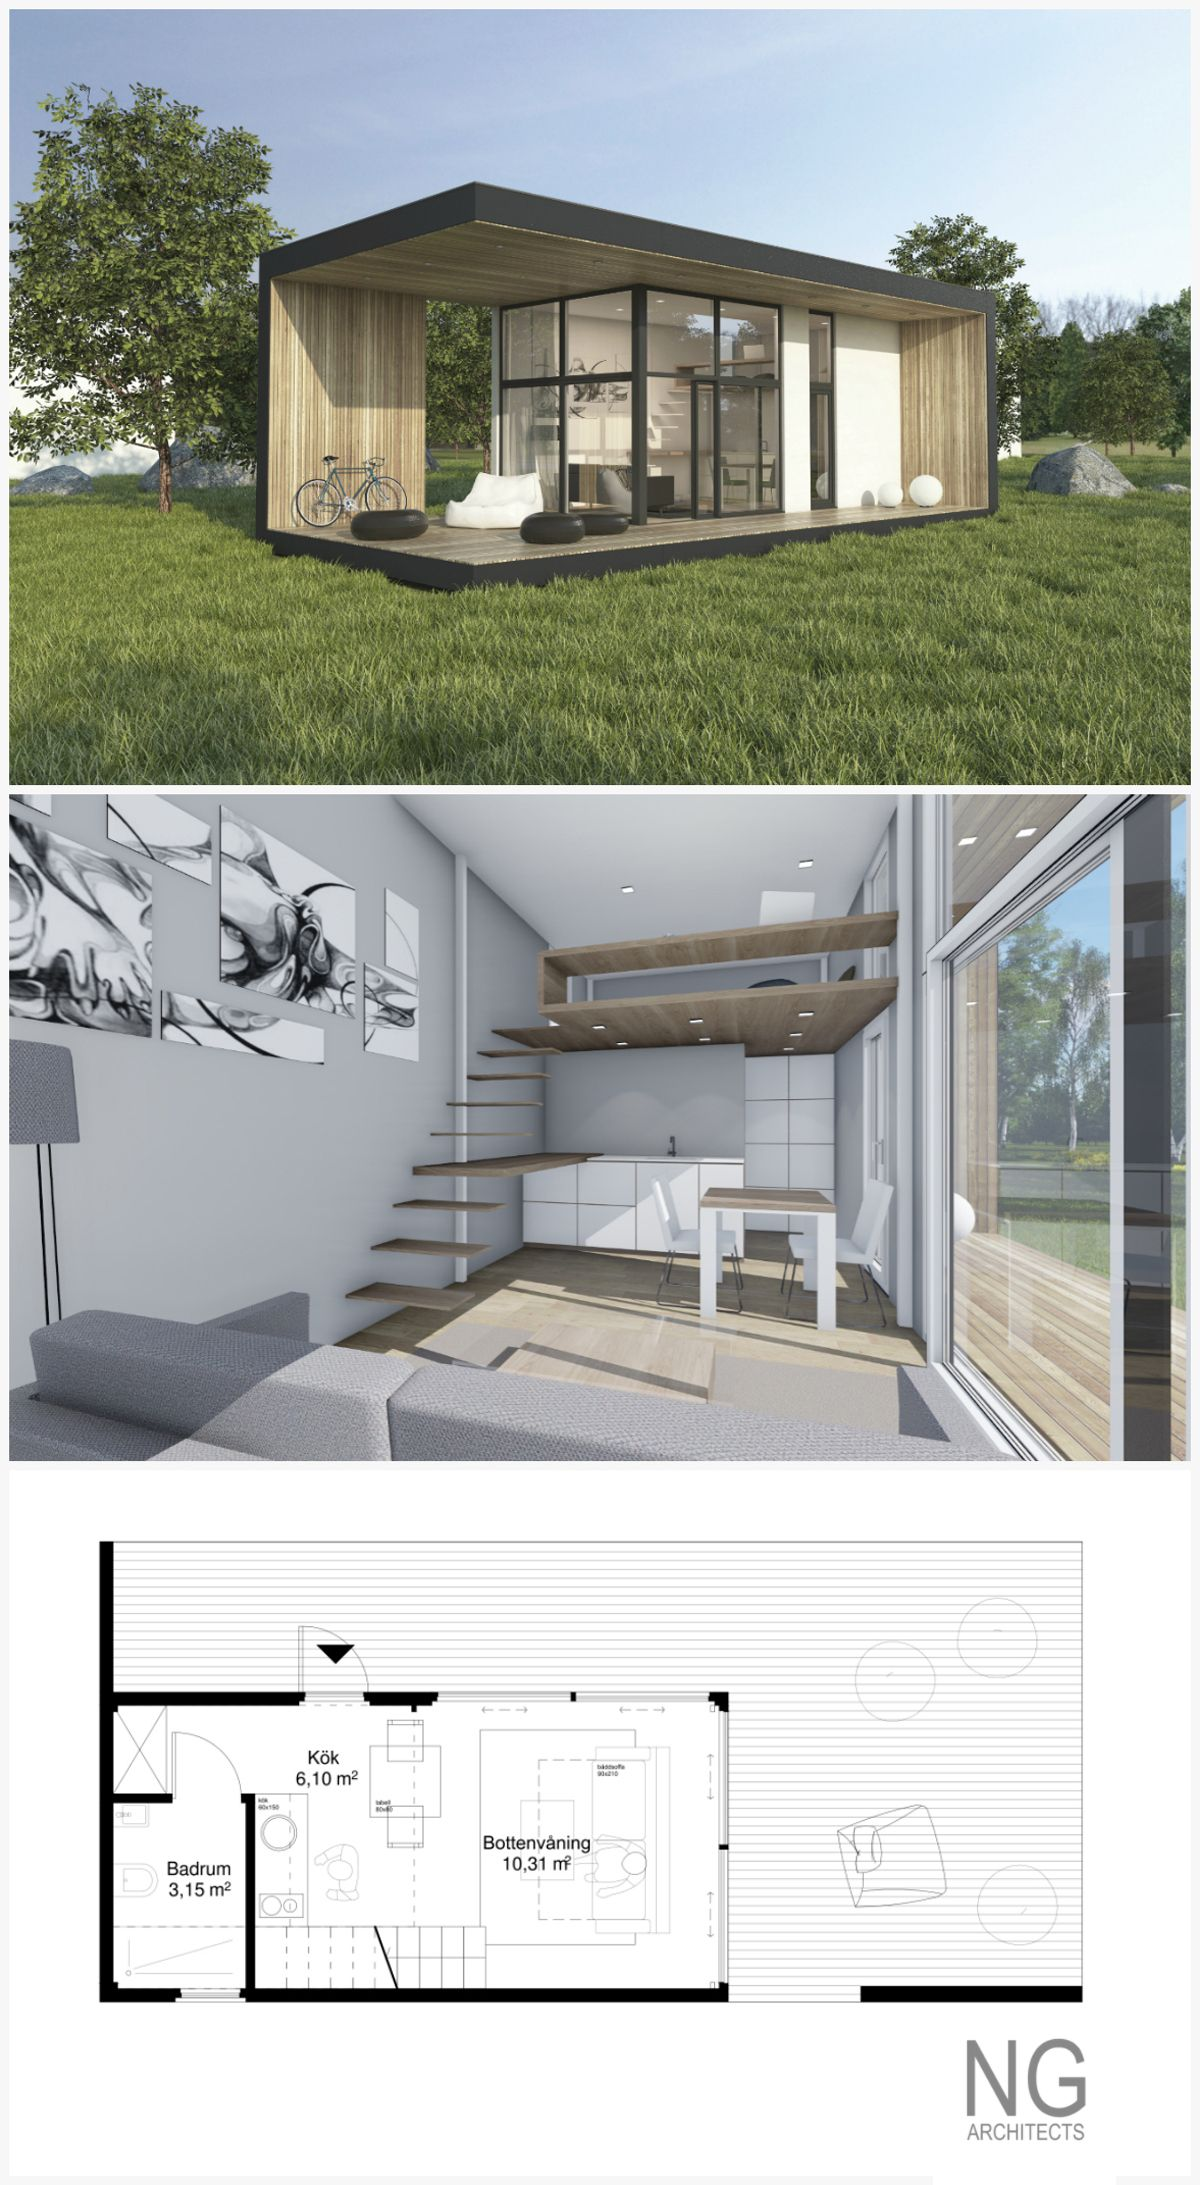 25 Small Living Room Ideas For Your Inspiration: 25 M Small House (attafallshus) Designed By NG